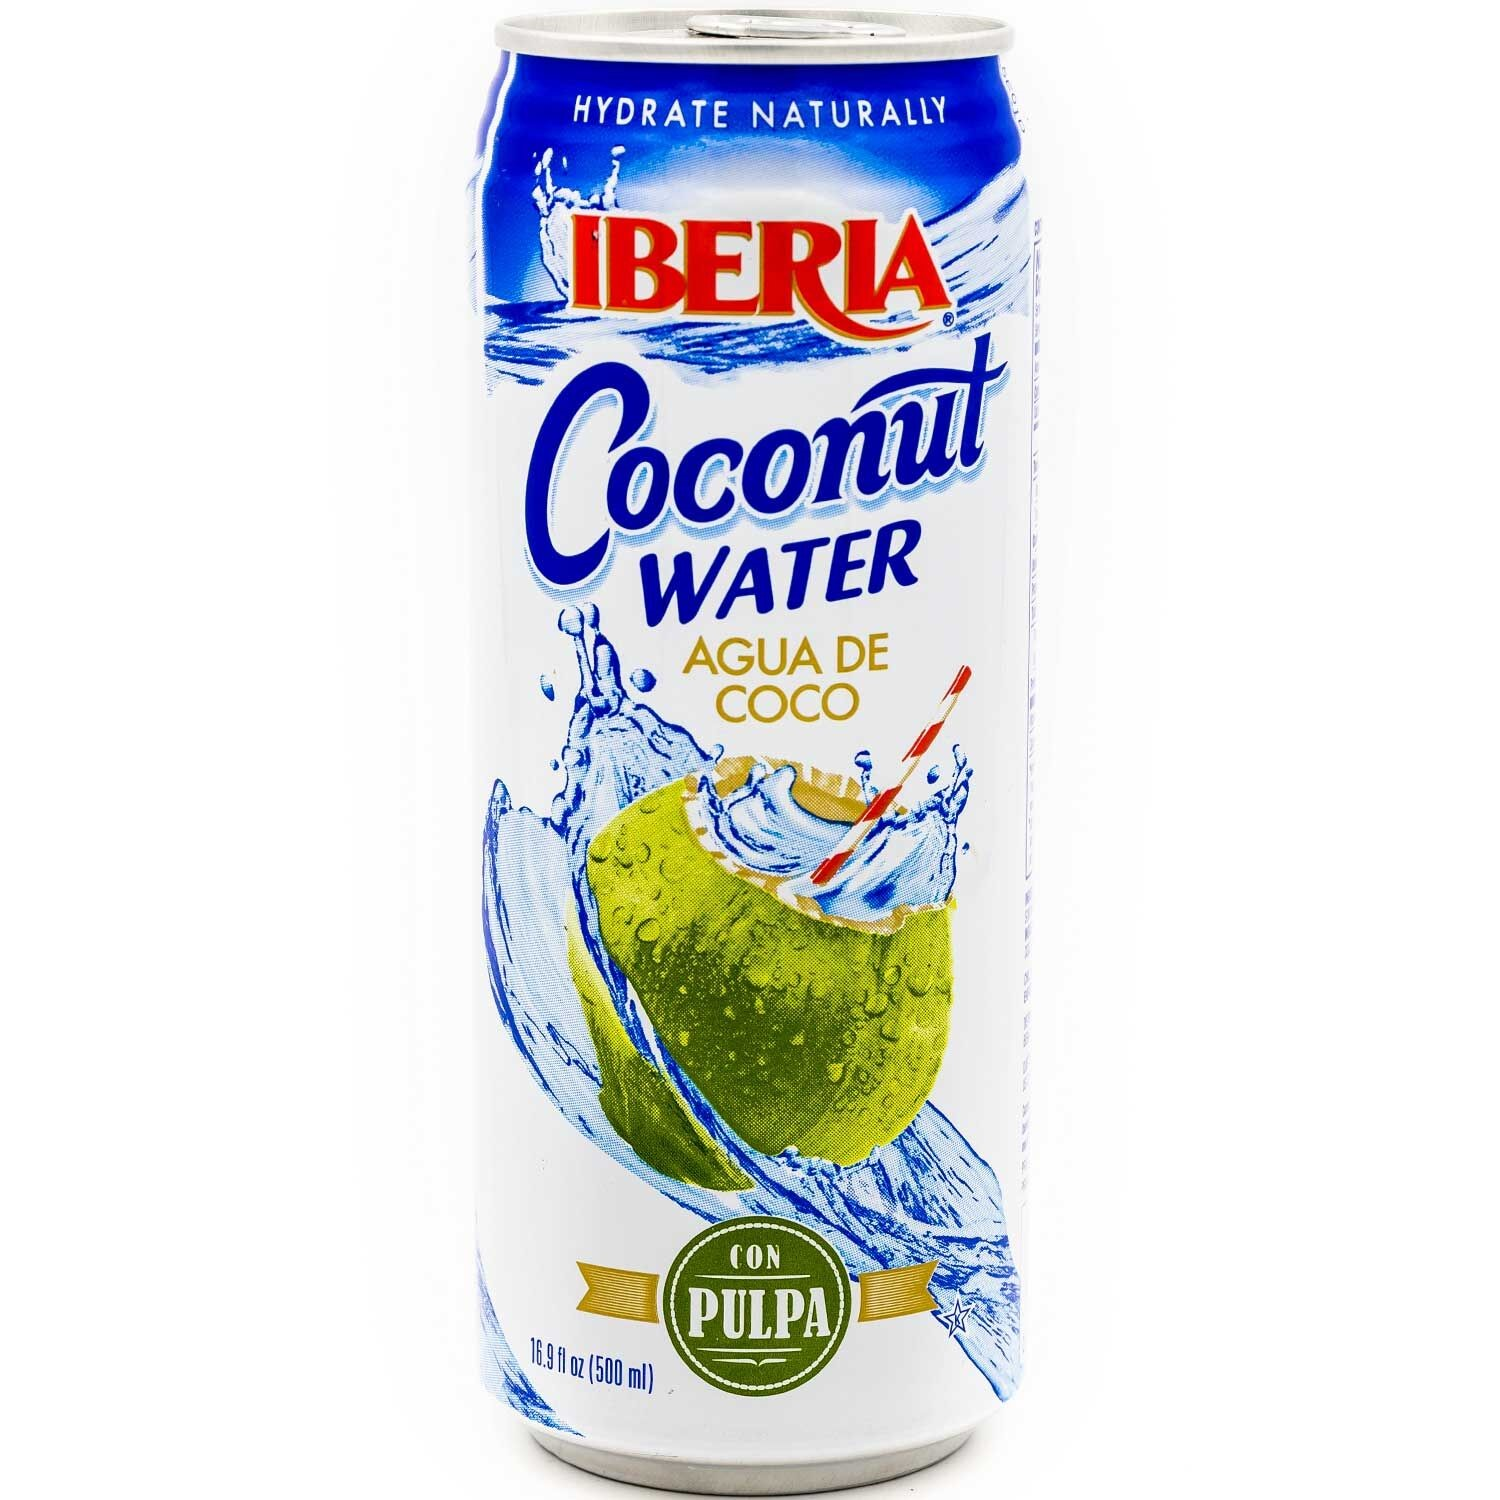 (5 Pack) Iberia Coconut Water, 16.9 Fl Oz, 1 Count